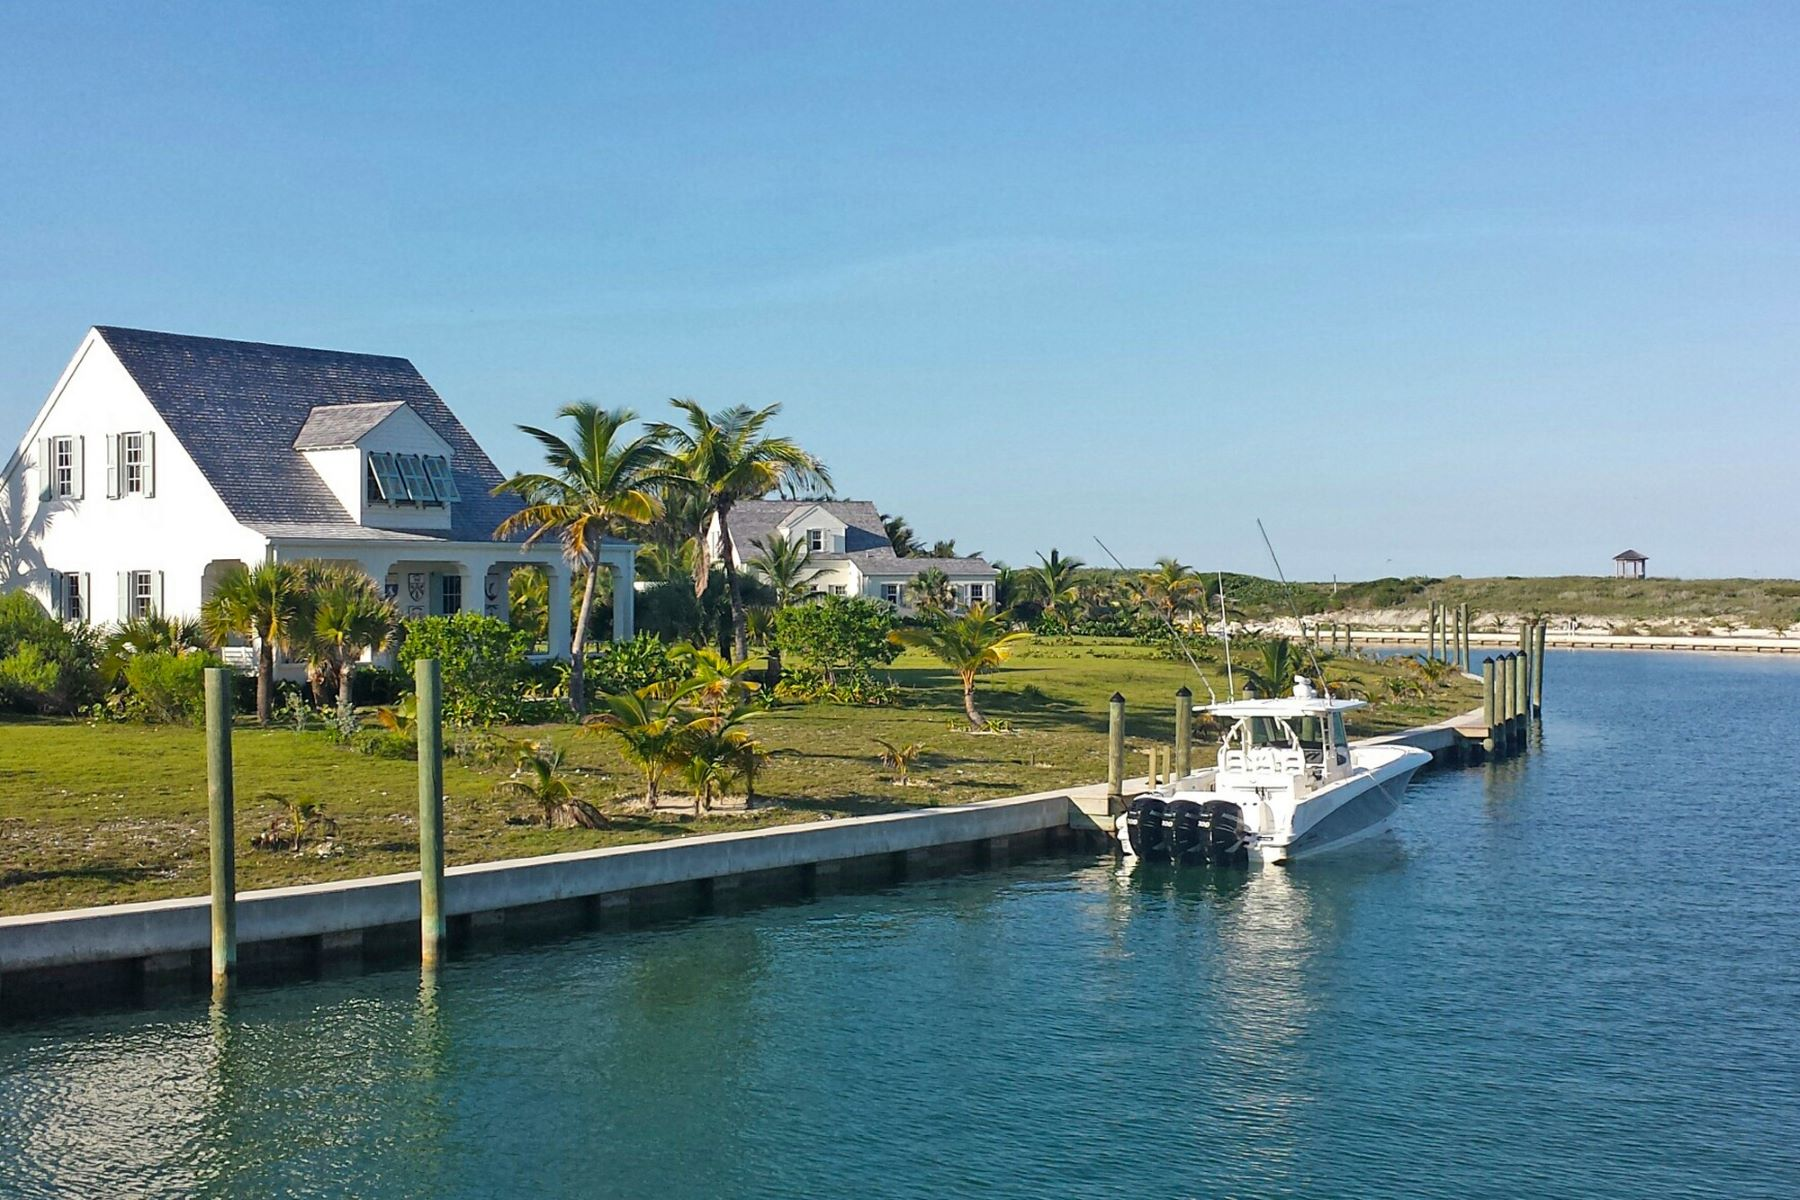 Single Family Home for Sale at Captain's Cottage, #2 Beach Road Schooner Bay, Abaco Bahamas